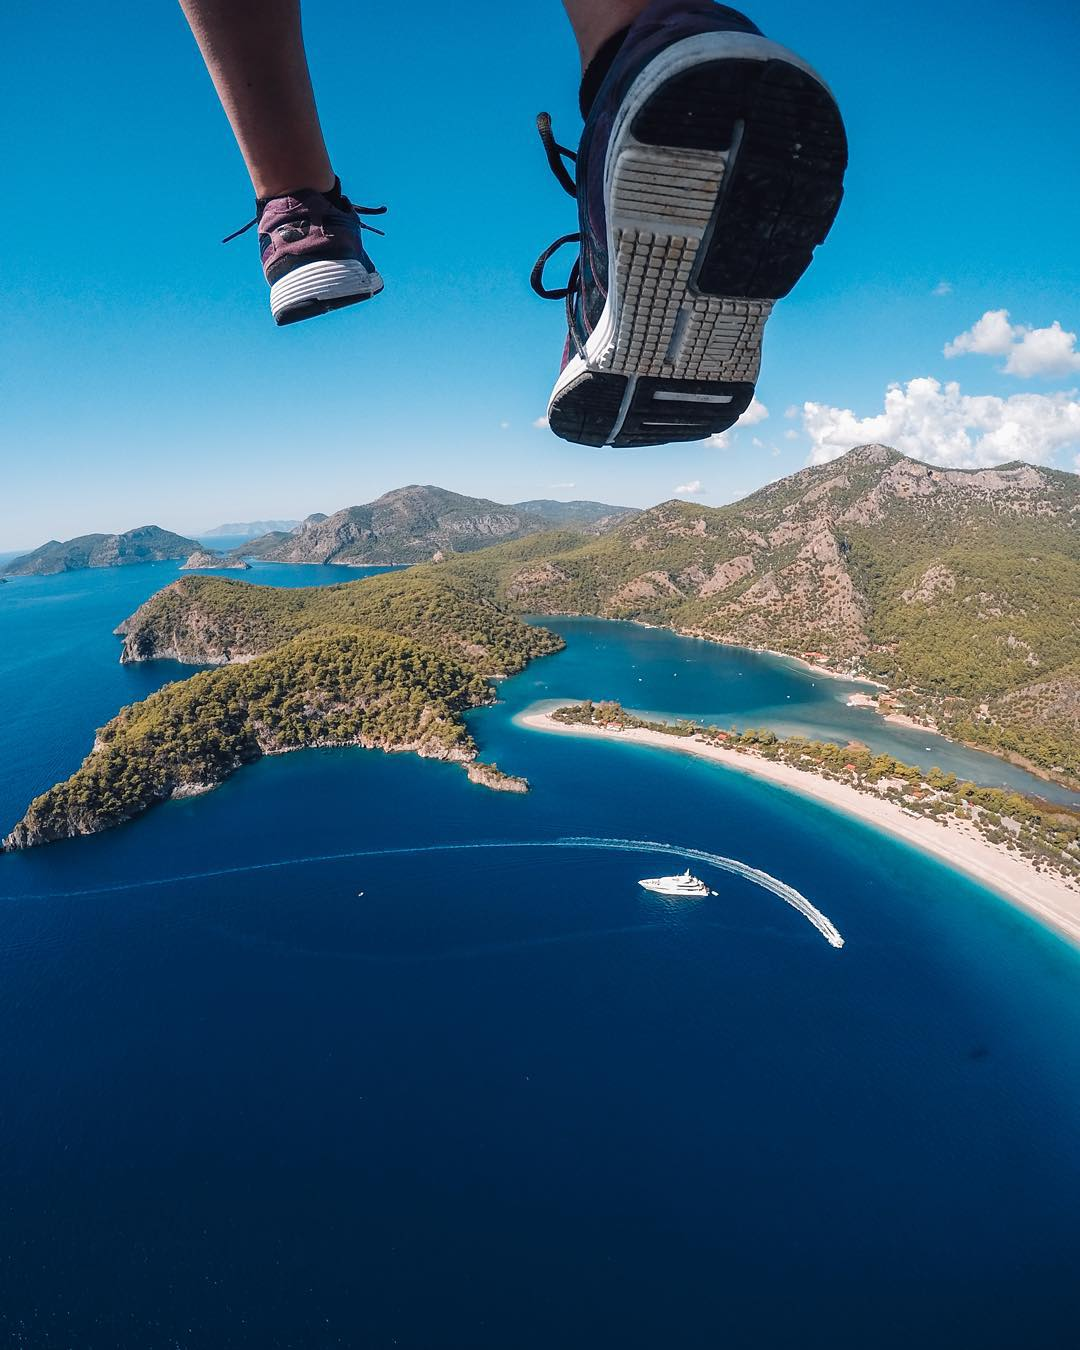 Photo of the Day! @buraktuzer walking on air while #paragliding over #Turkey. Share your most unique perspectives with us by following the link in our bio! #GoPro #Fethiye